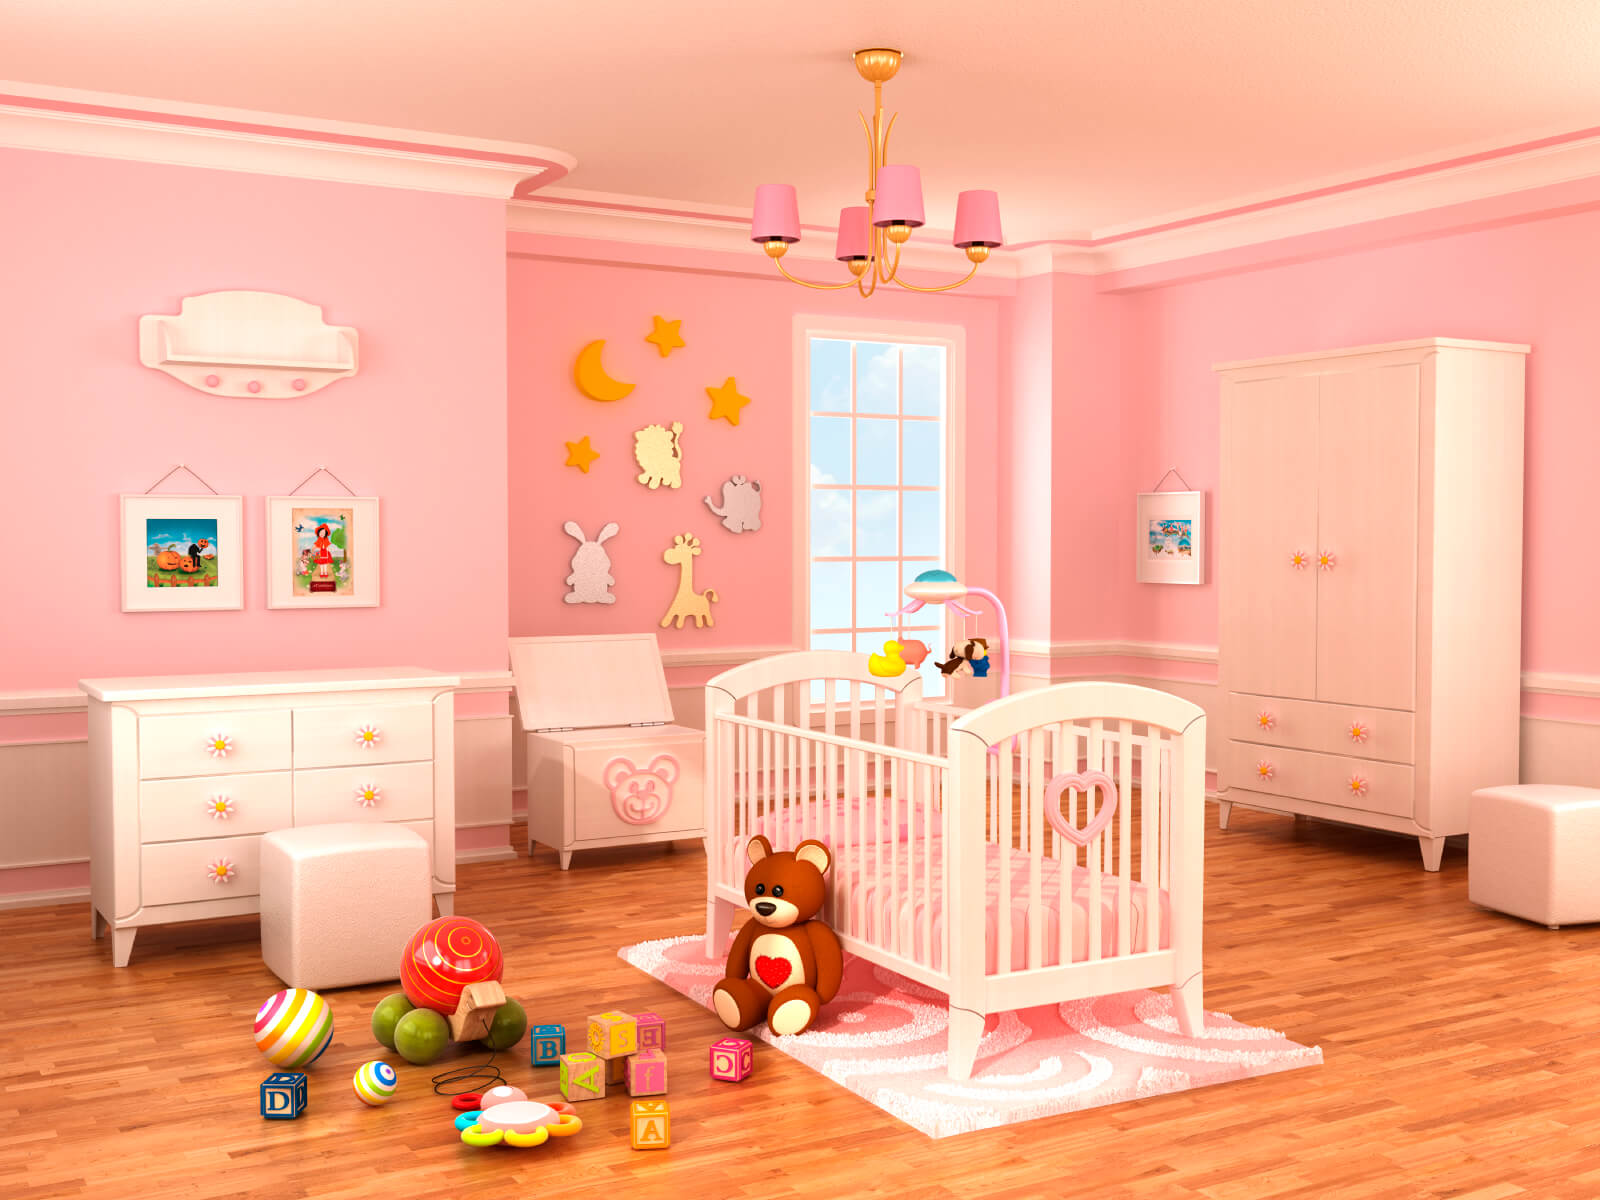 18 baby girl nursery ideas themes designs pictures - Baby nursey ideas ...